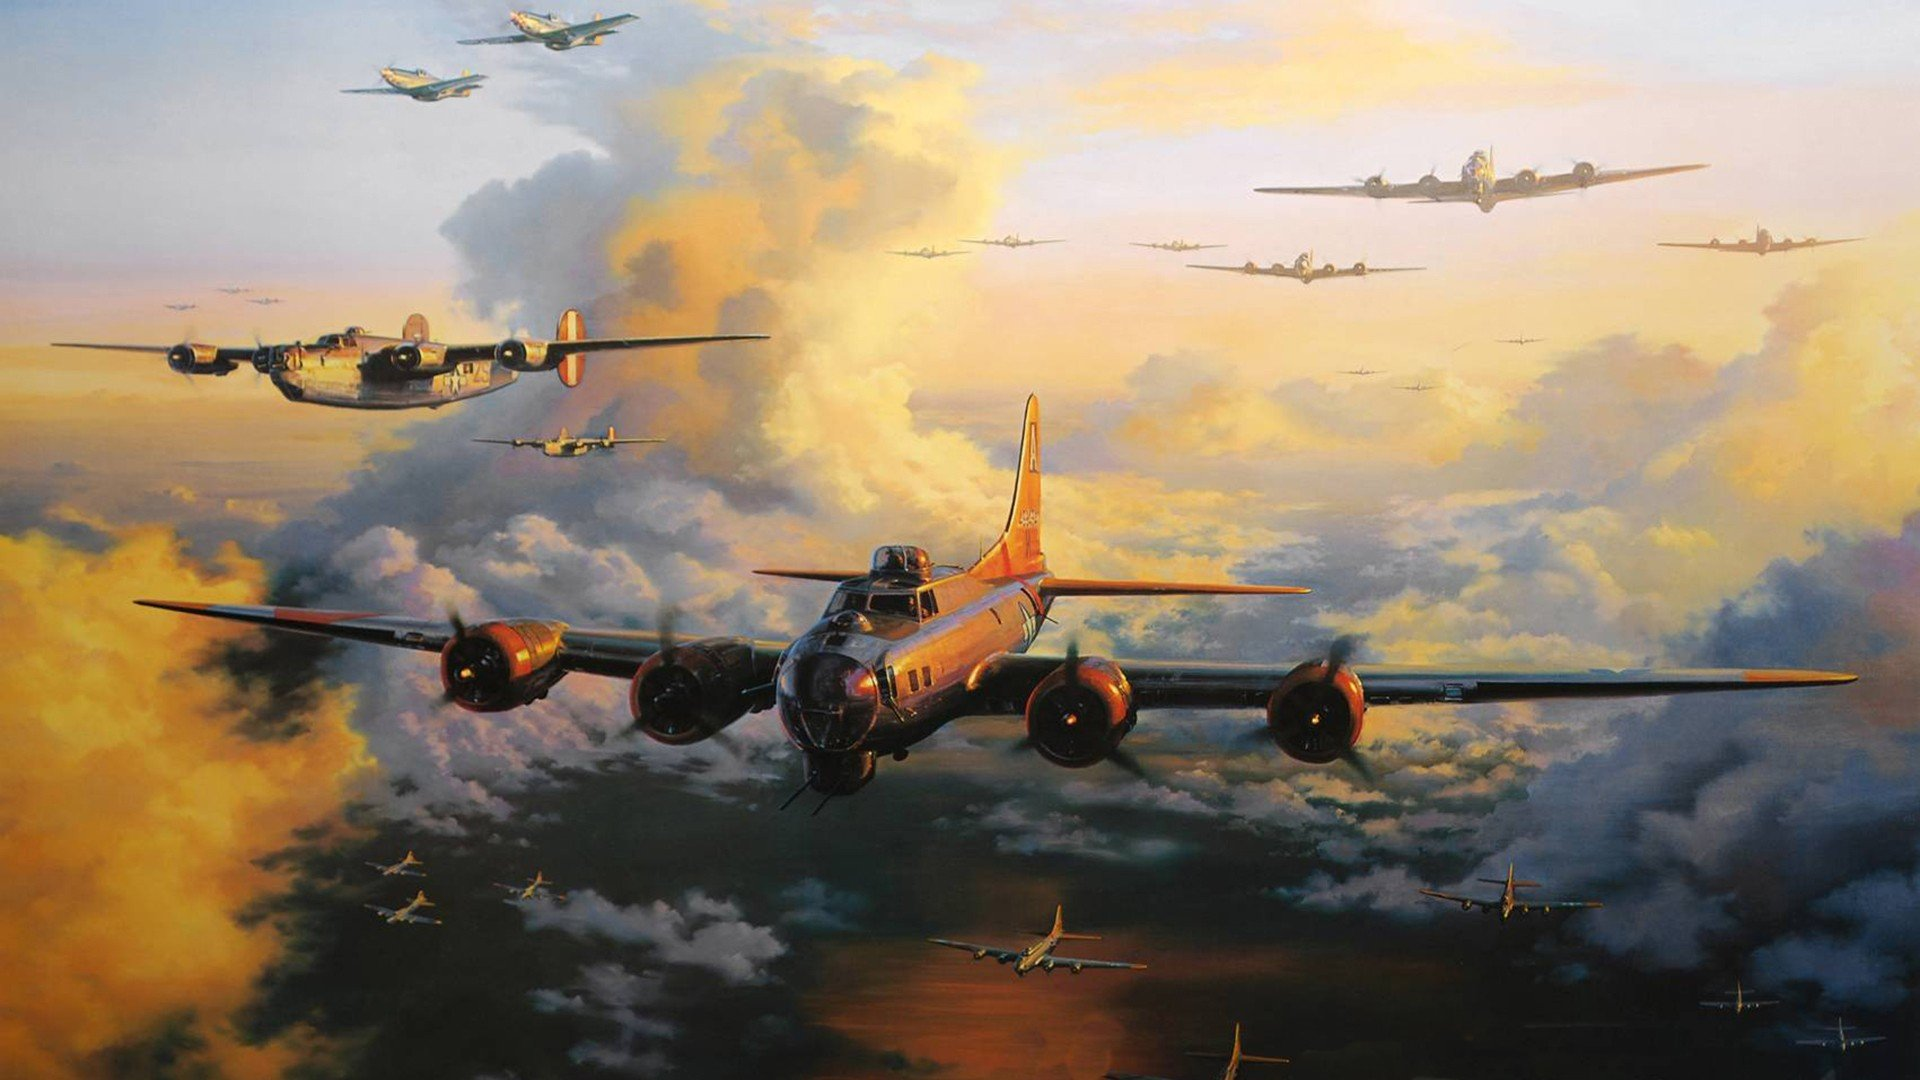 B 17 Flying Fortress Wallpaper 1920x1080